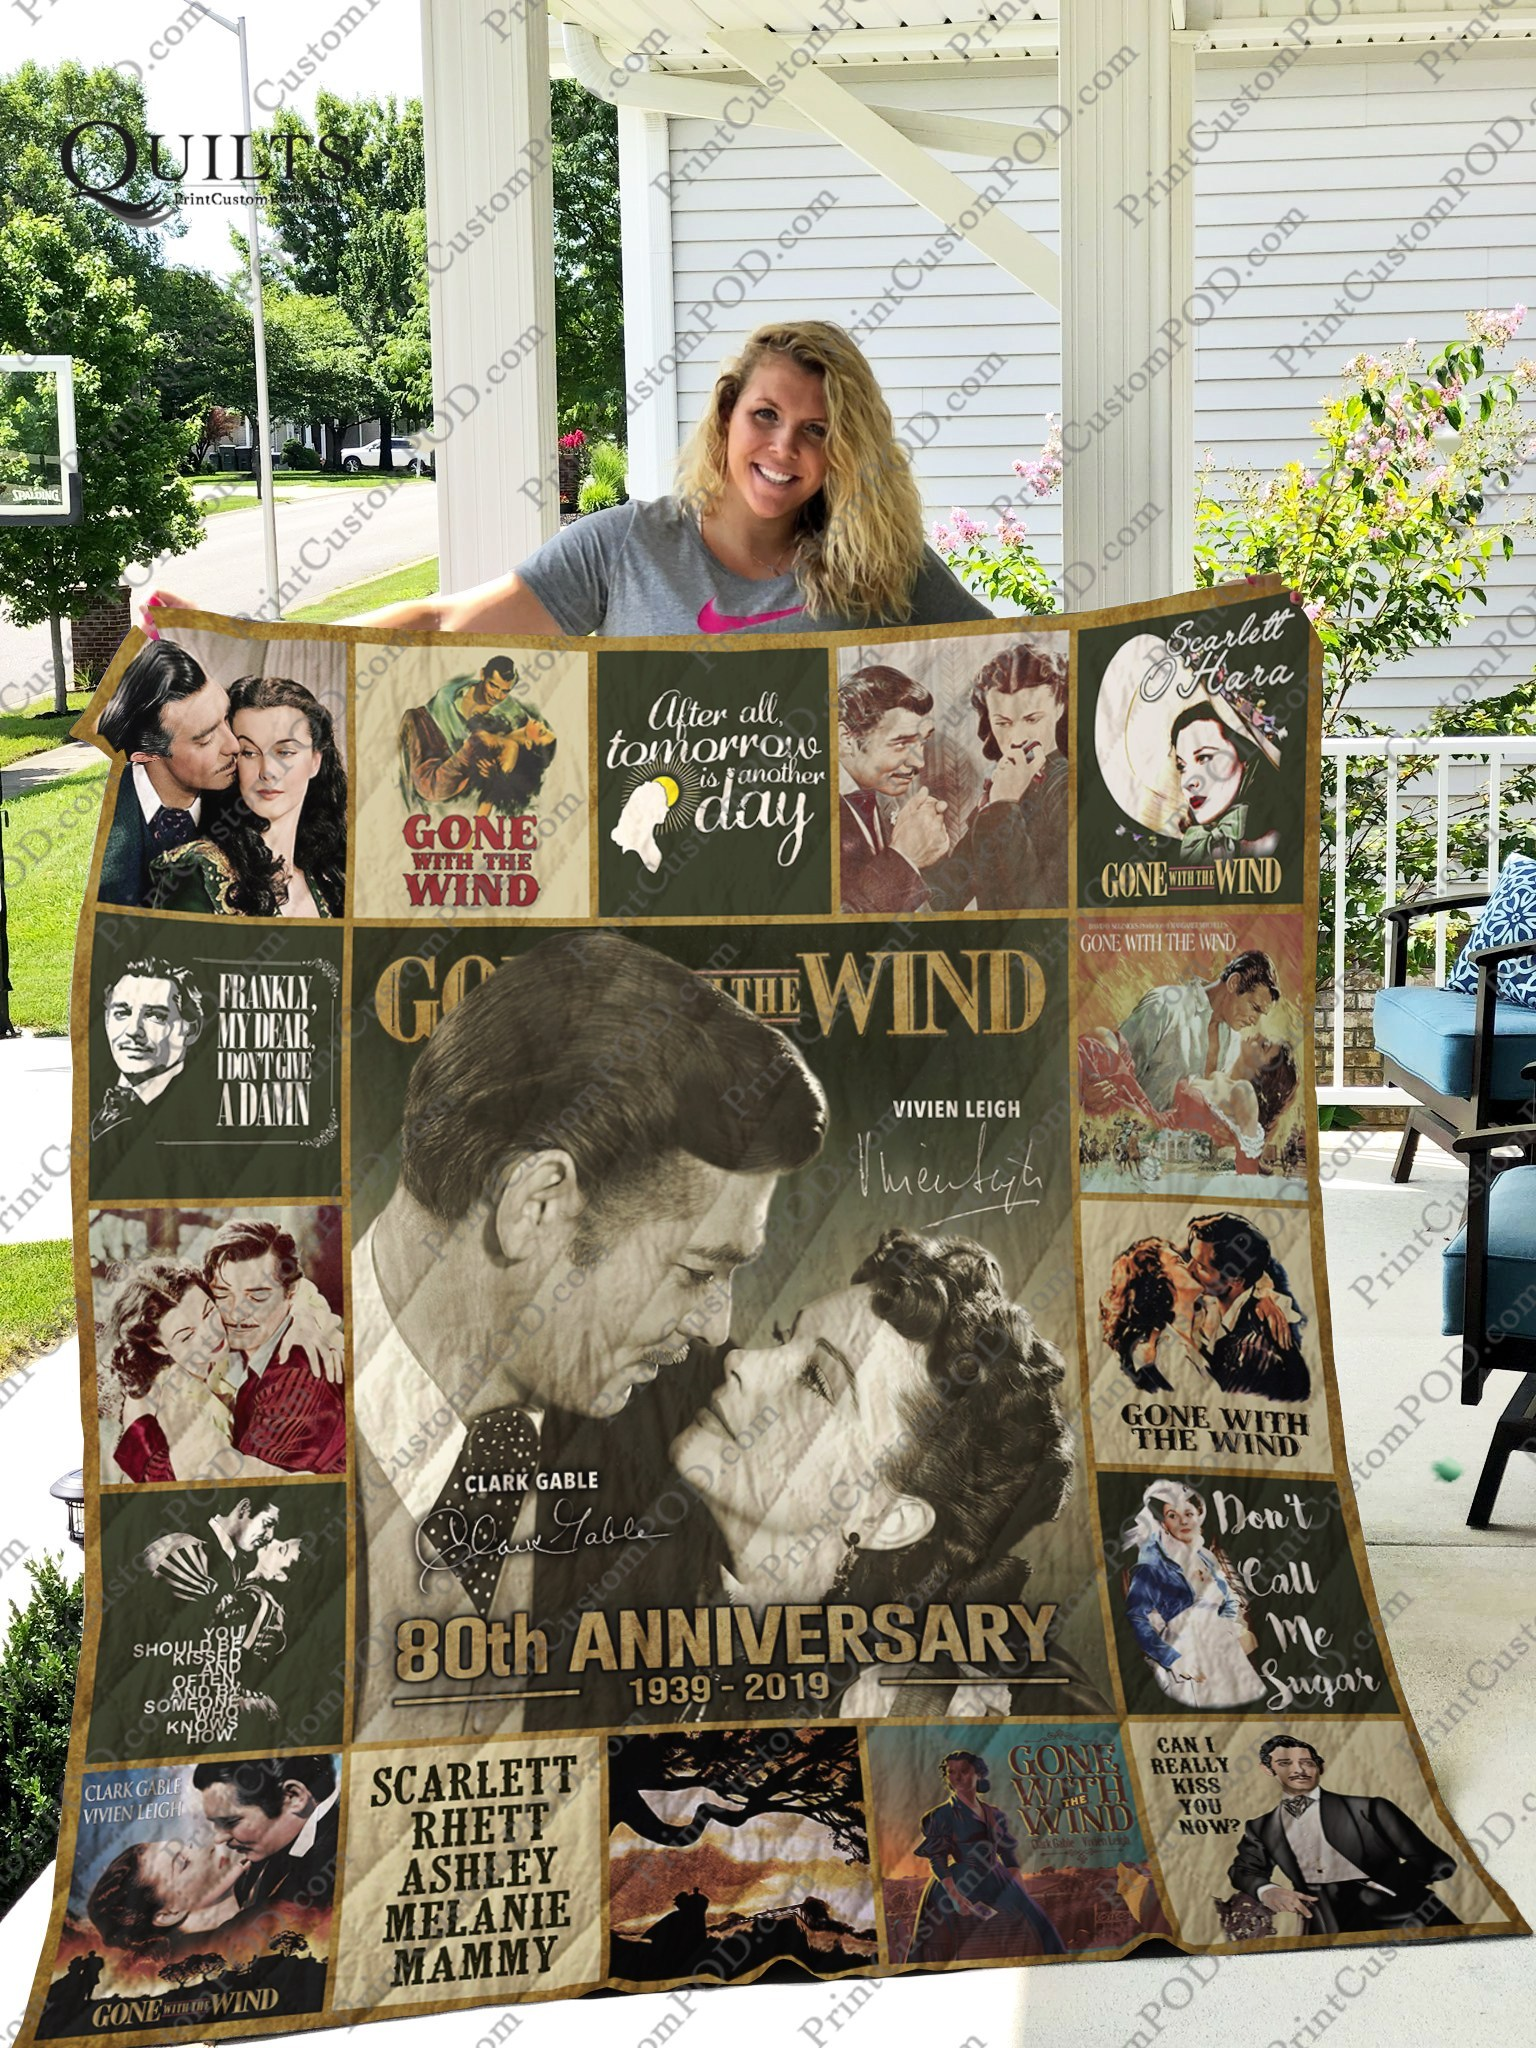 Gone with the wind 80th anniversary quilt 1